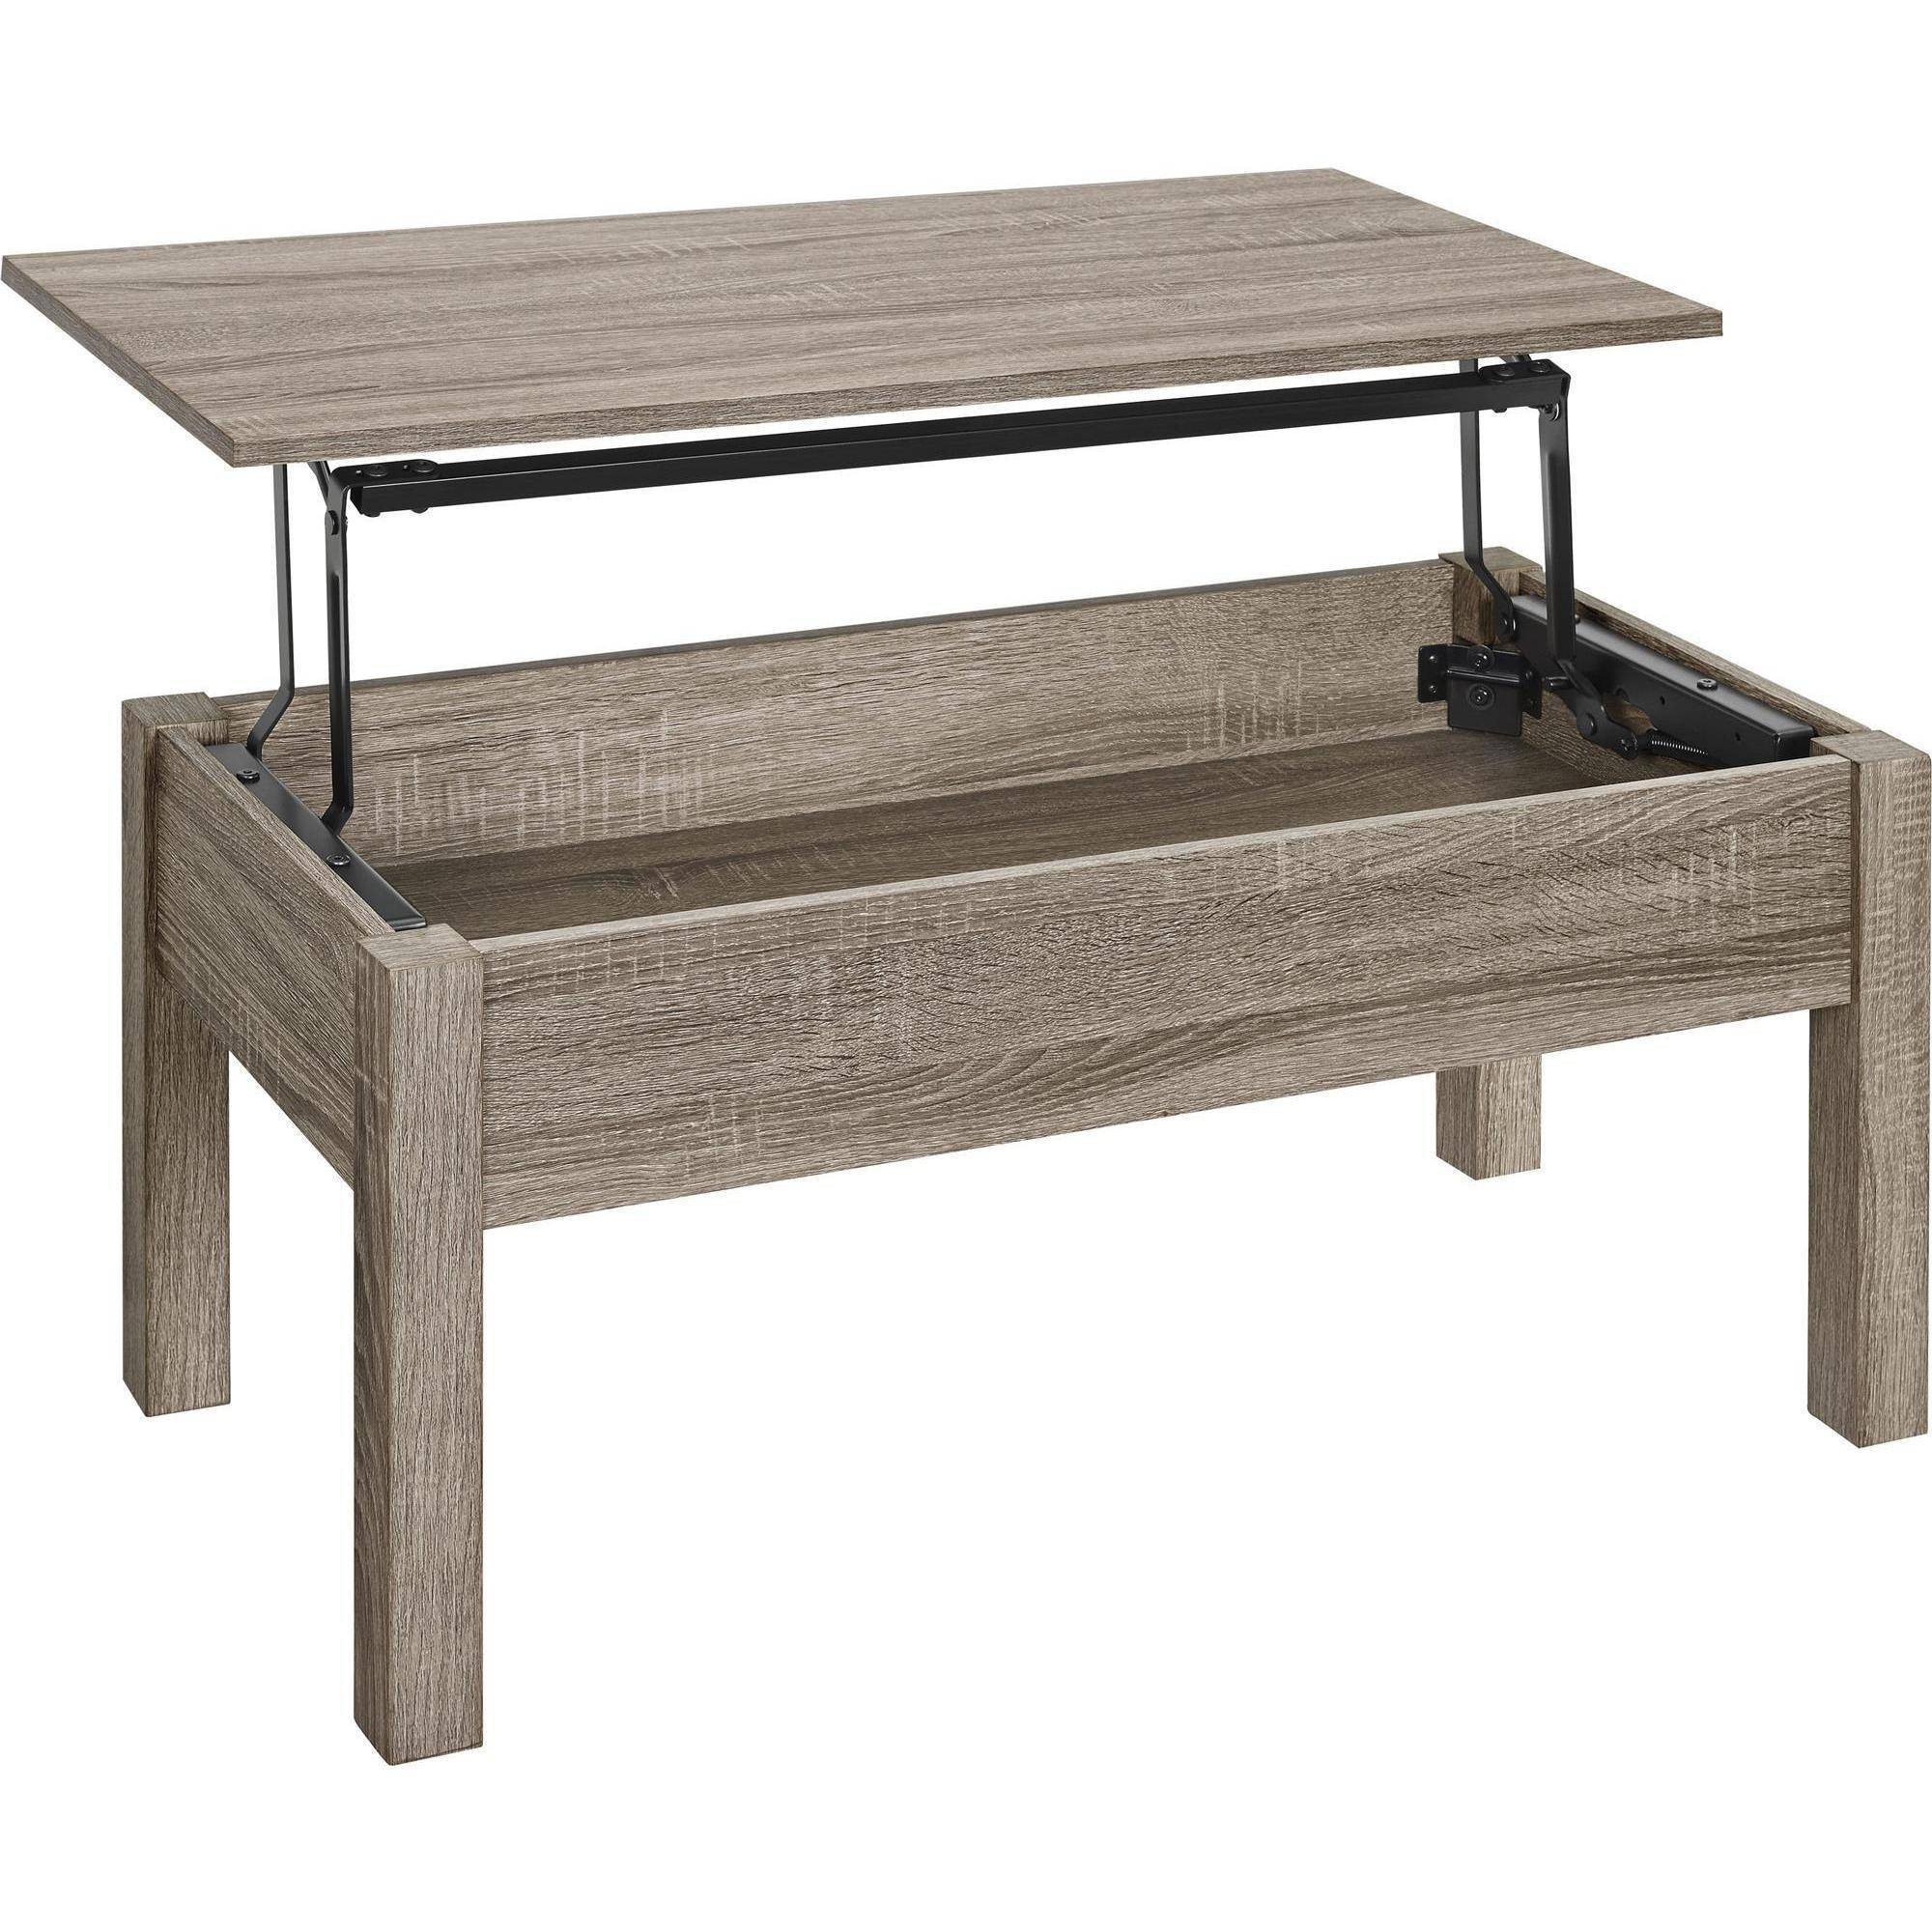 Merveilleux Mainstays Lift Top Coffee Table, Multiple Colors   Walmart.com